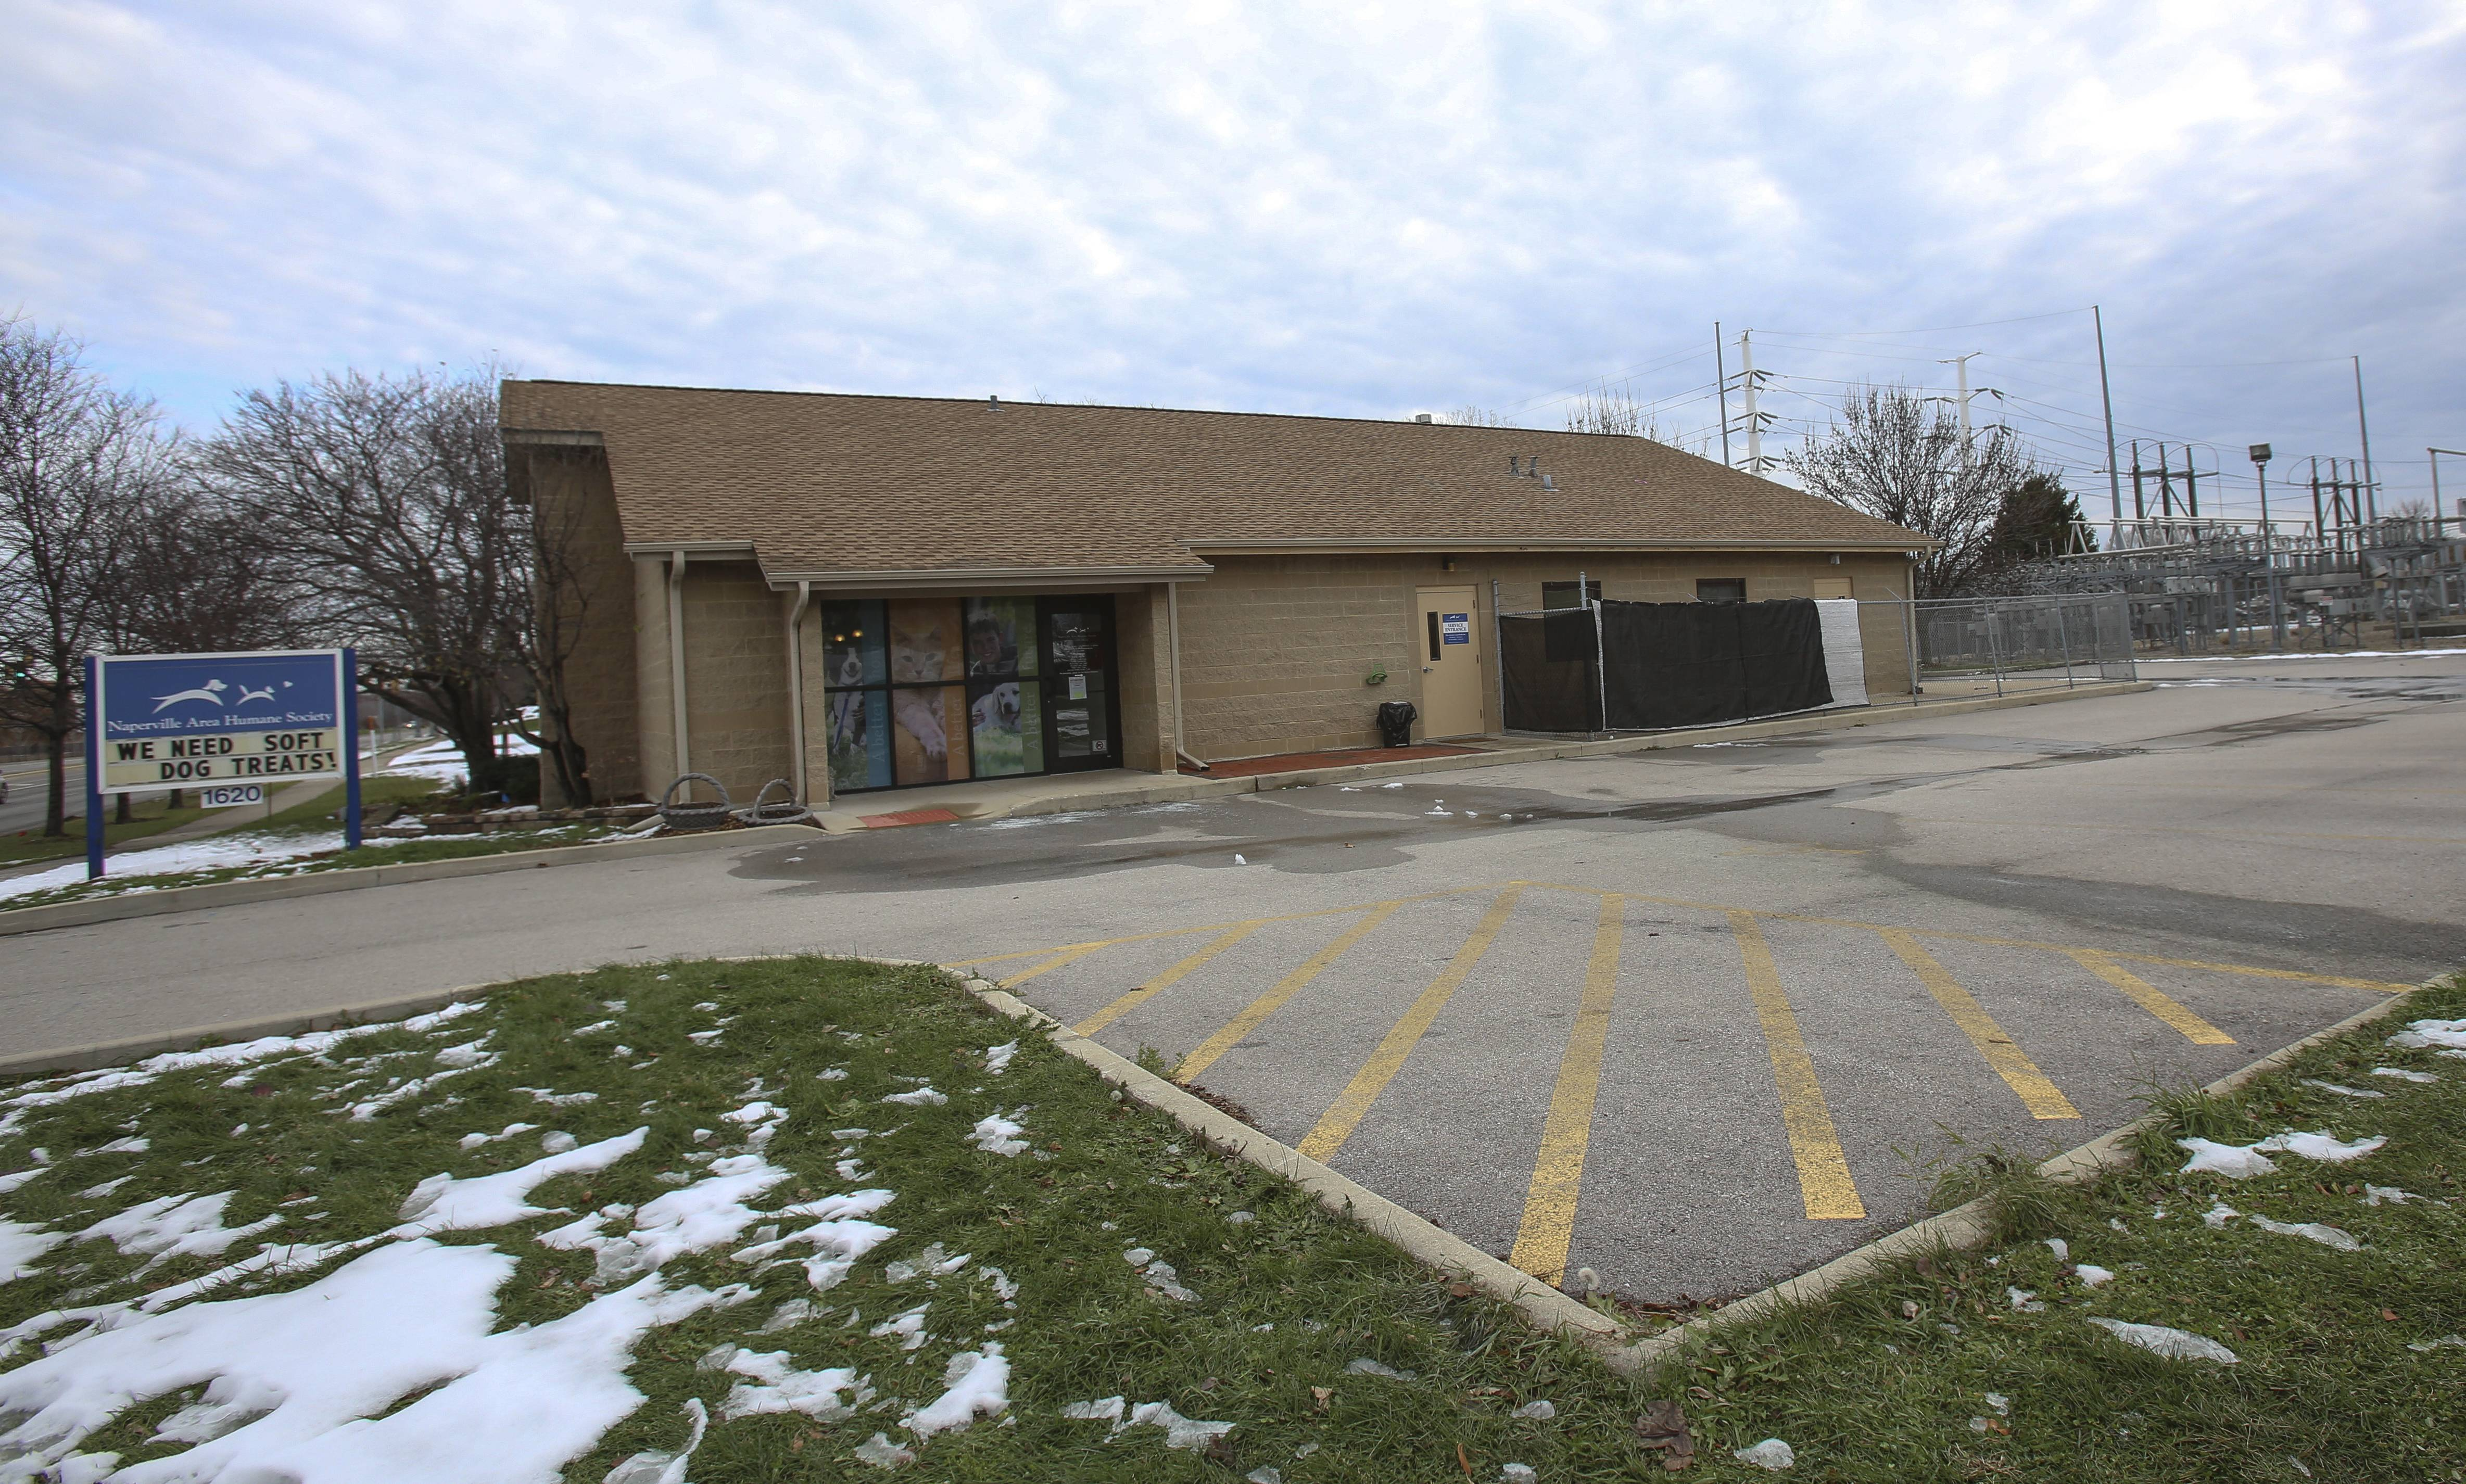 The area immediately west of the Naperville Area Humane Society on Diehl Road will be turned into outdoor dog runs and outdoor meet-and-greet rooms for people to play with adoptable pets. Work on the project is expected to begin next spring.